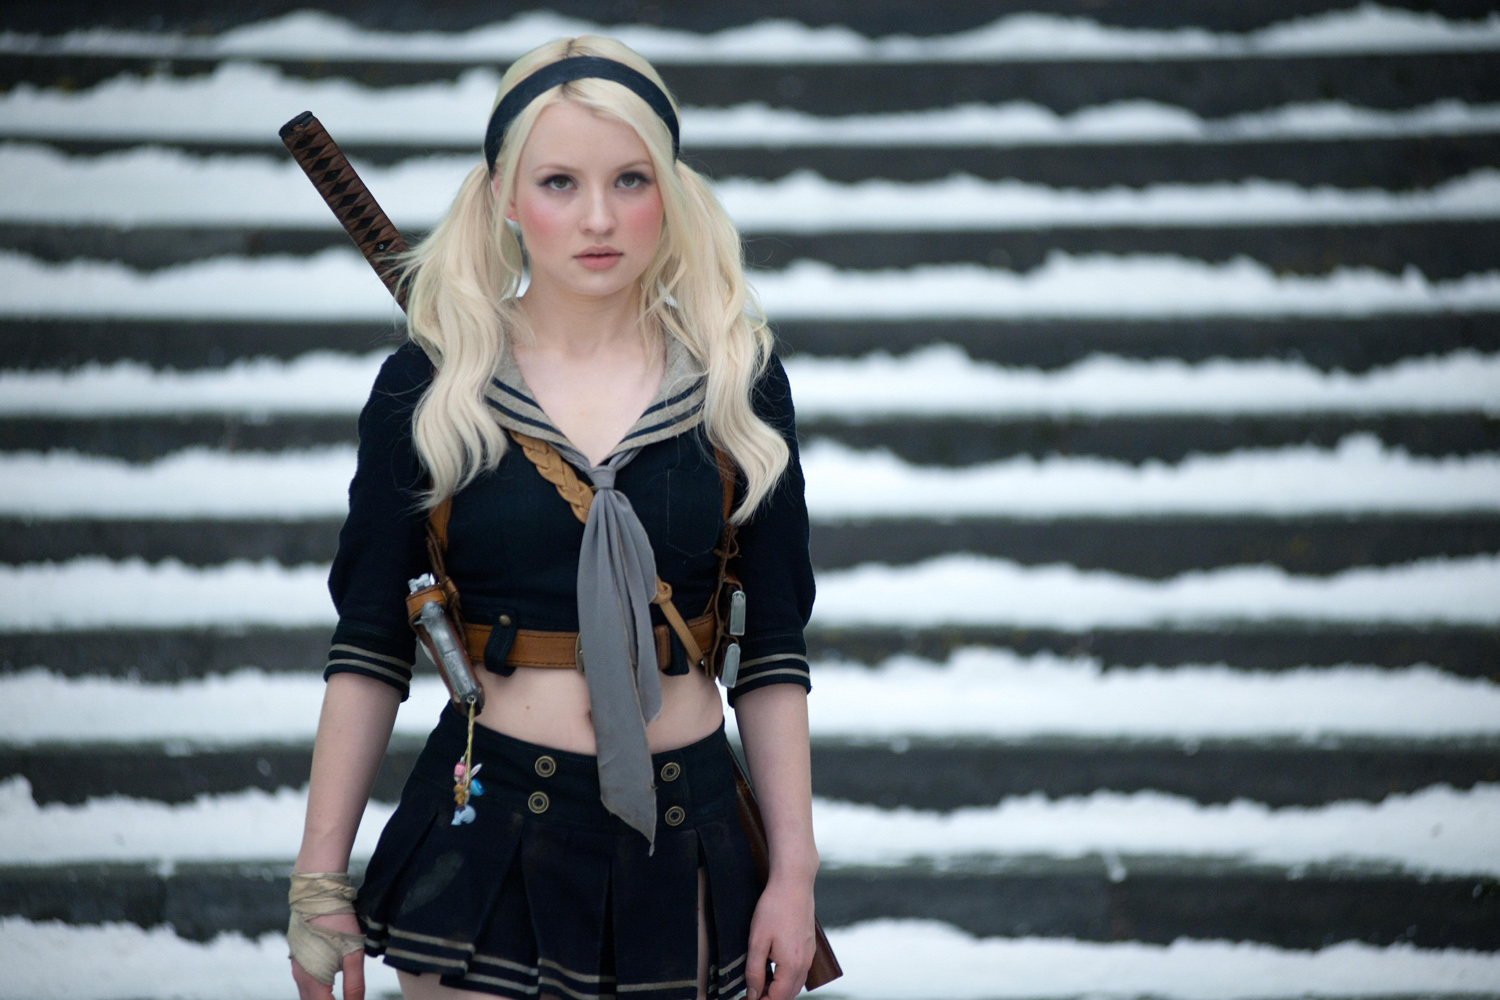 Emily Browning Sucker Punch Hot